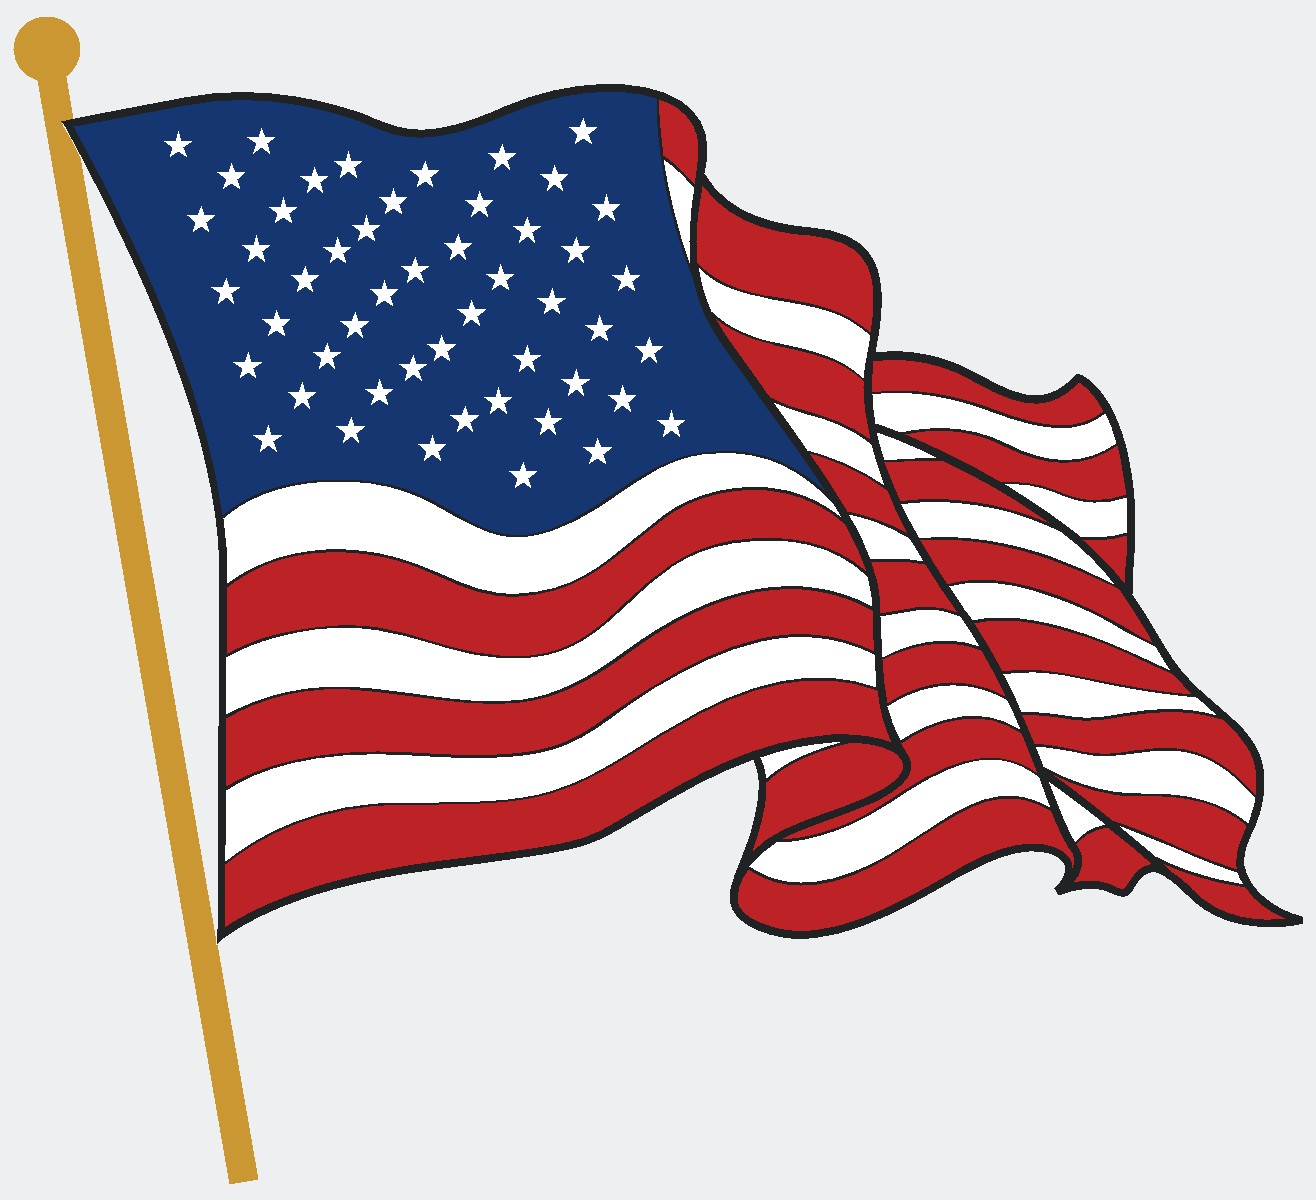 ... American flag free flag clip art clipart cliparting 3 - Cliparting clipartall.com ...